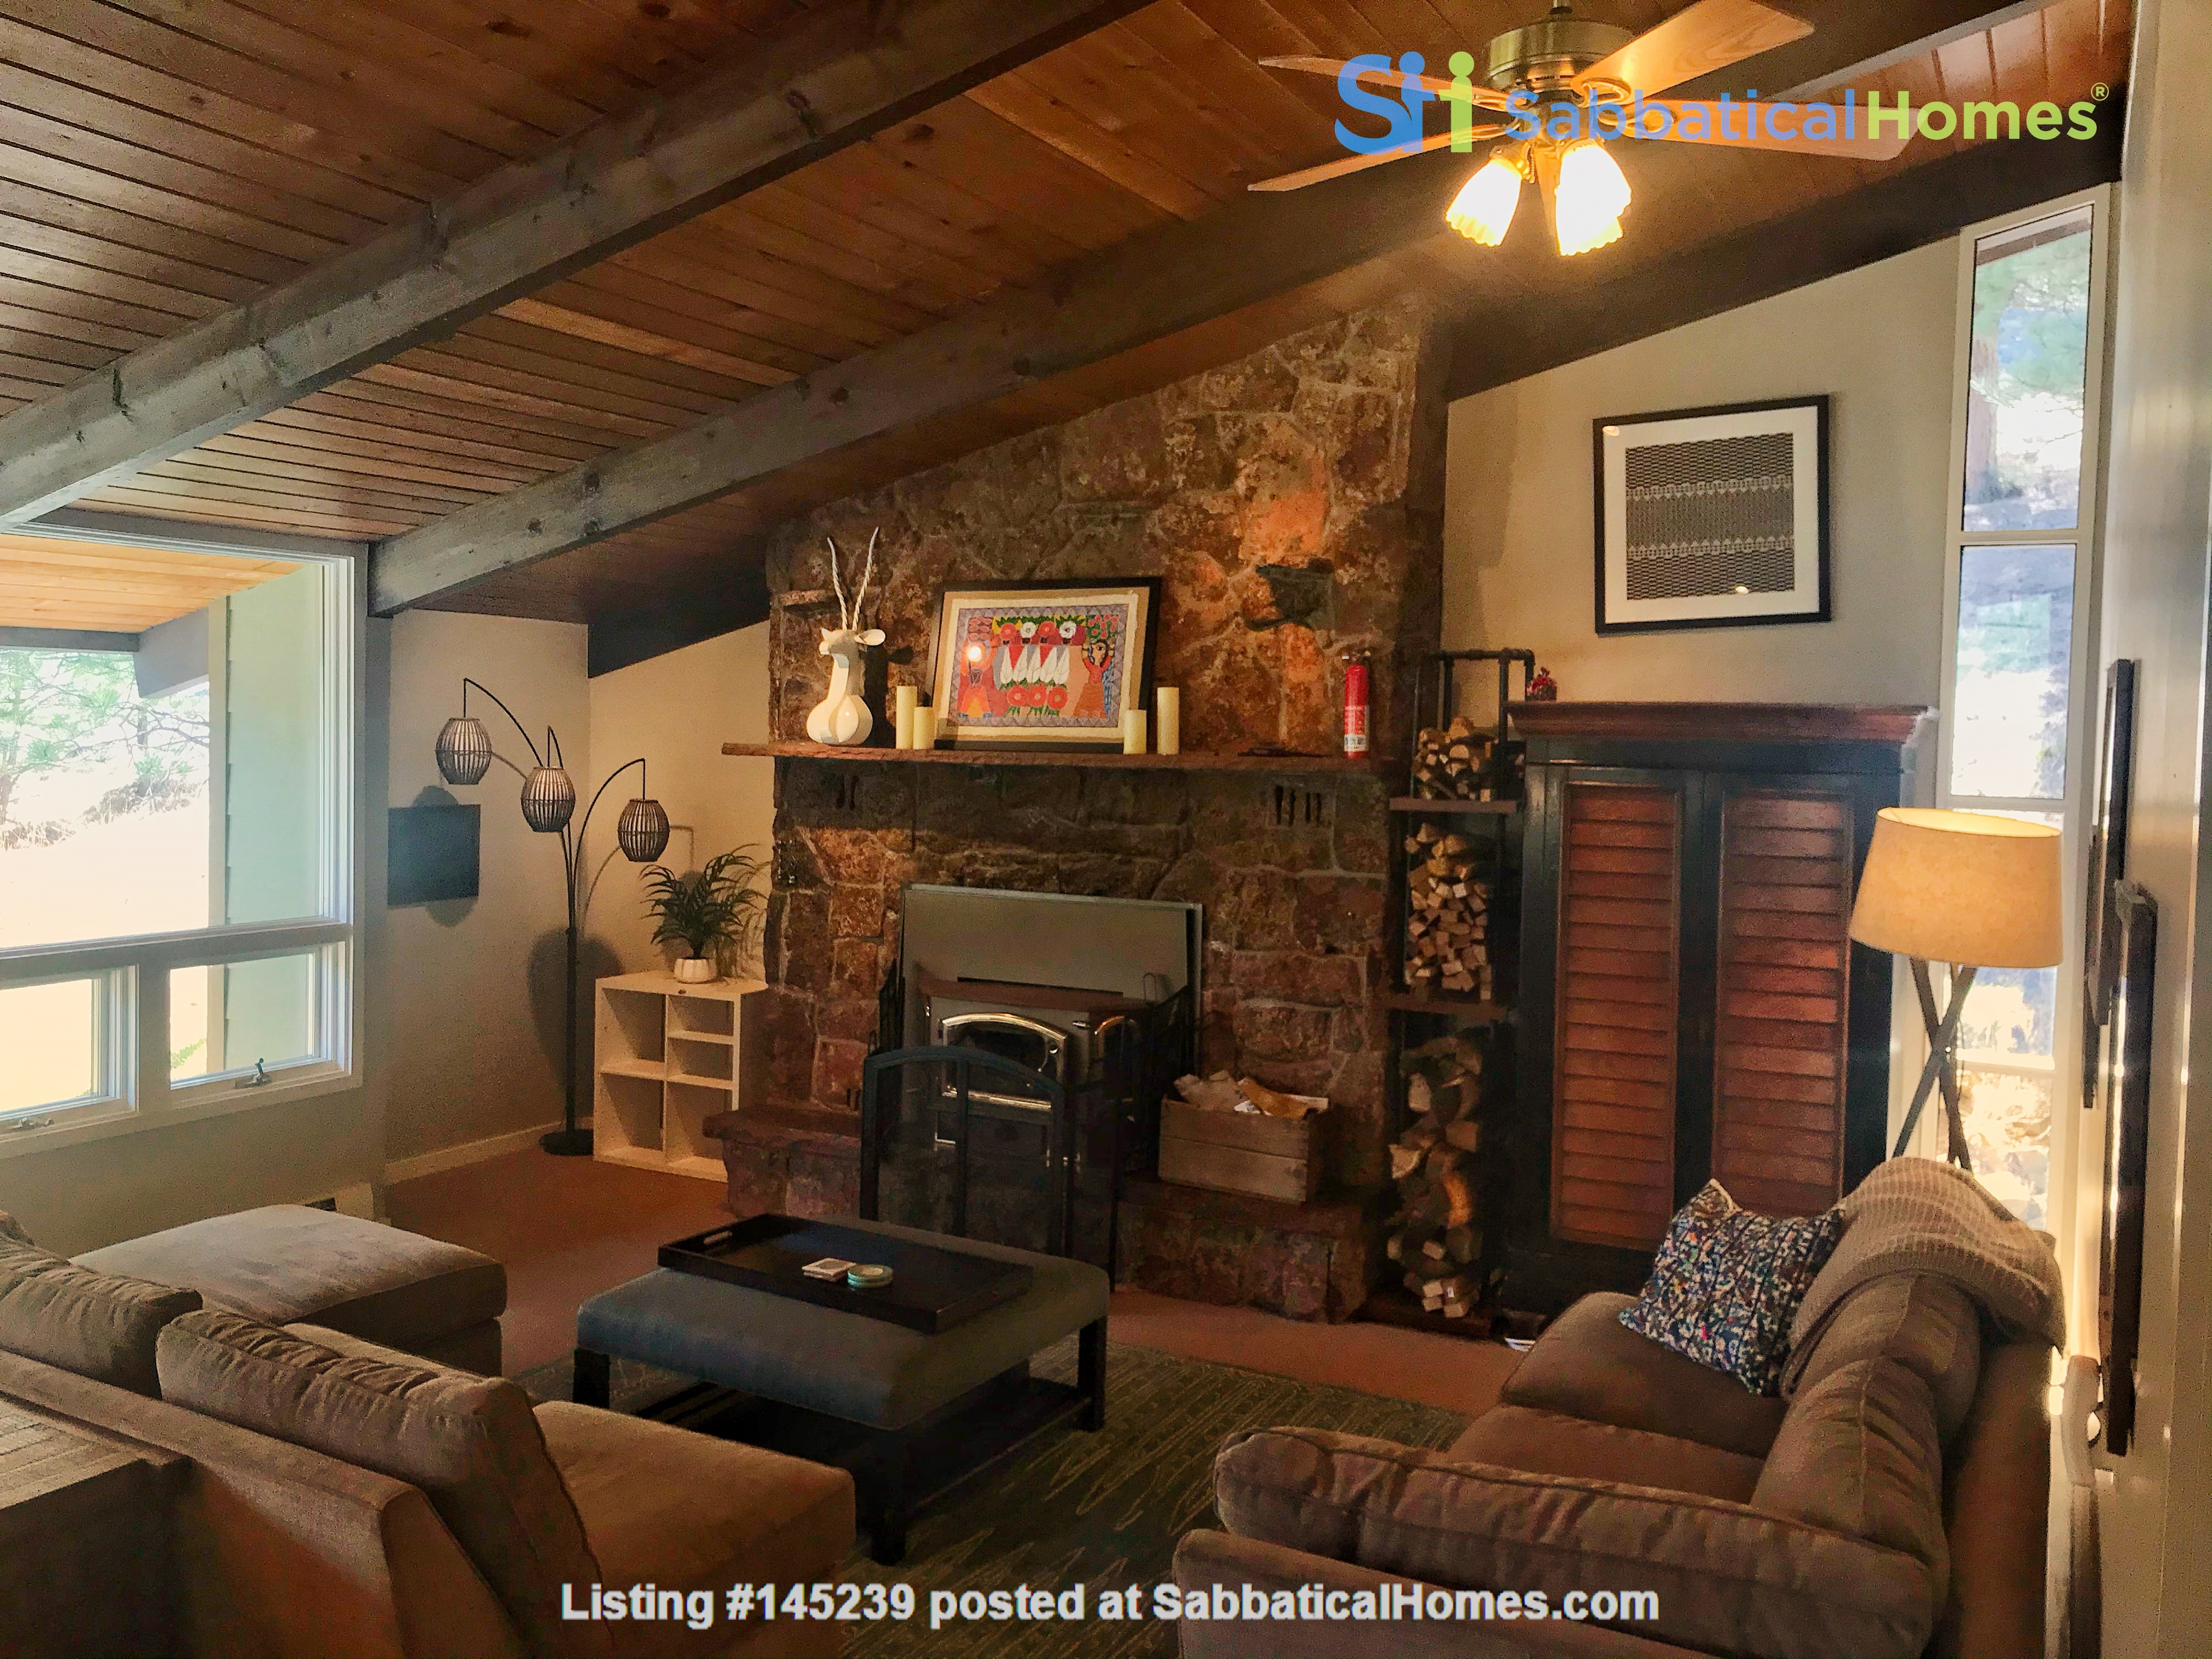 Lovely Mountain Home for Rent Home Rental in Boulder, Colorado, United States 2